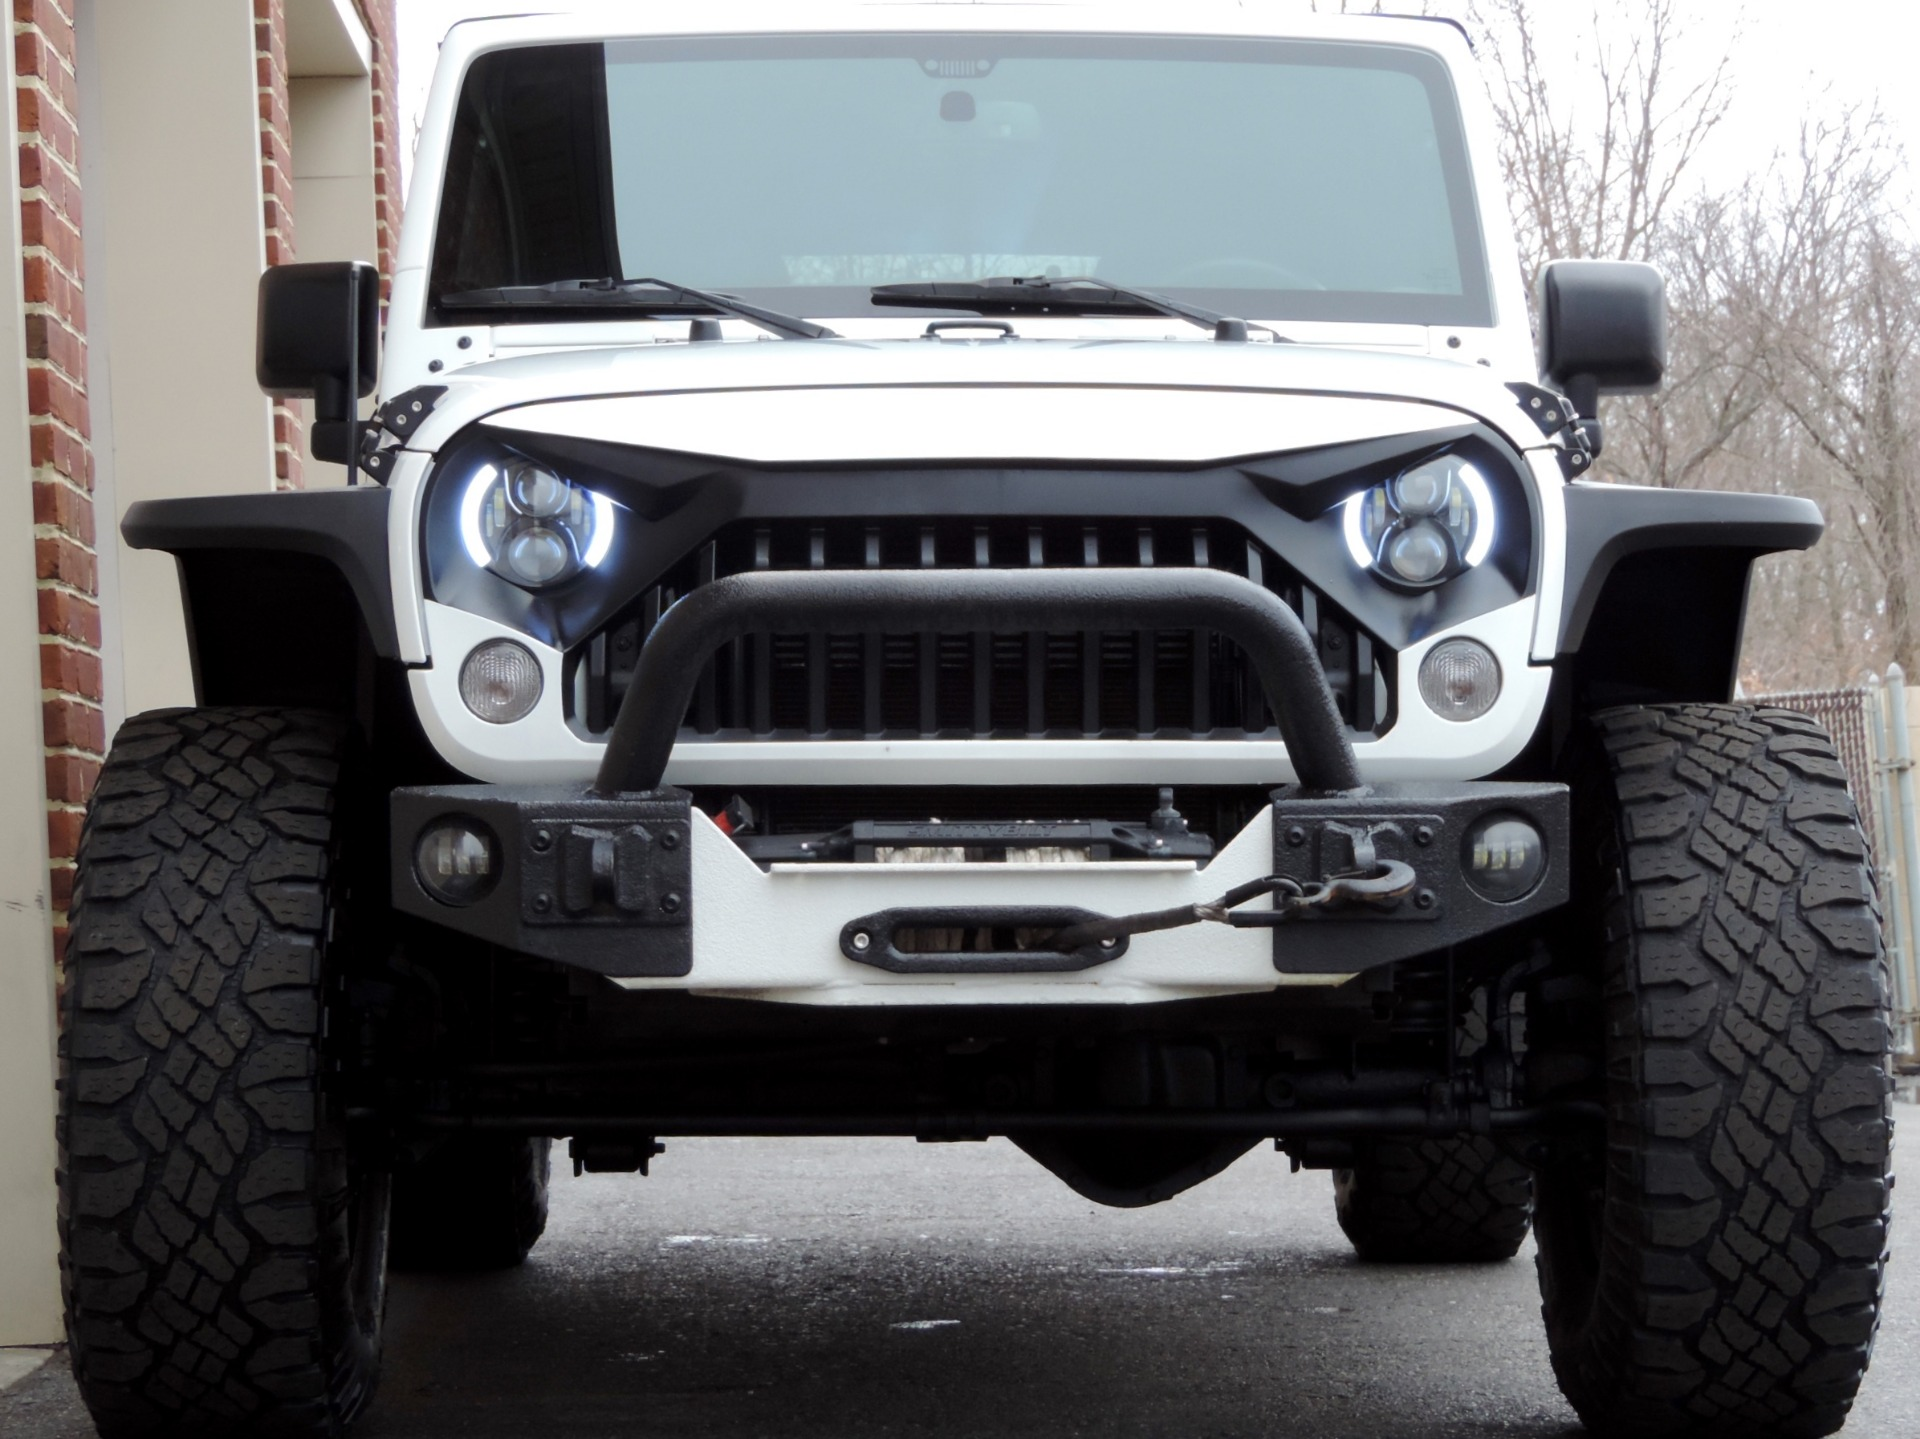 2015 Jeep Wrangler Unlimited Rubicon Stock for sale near